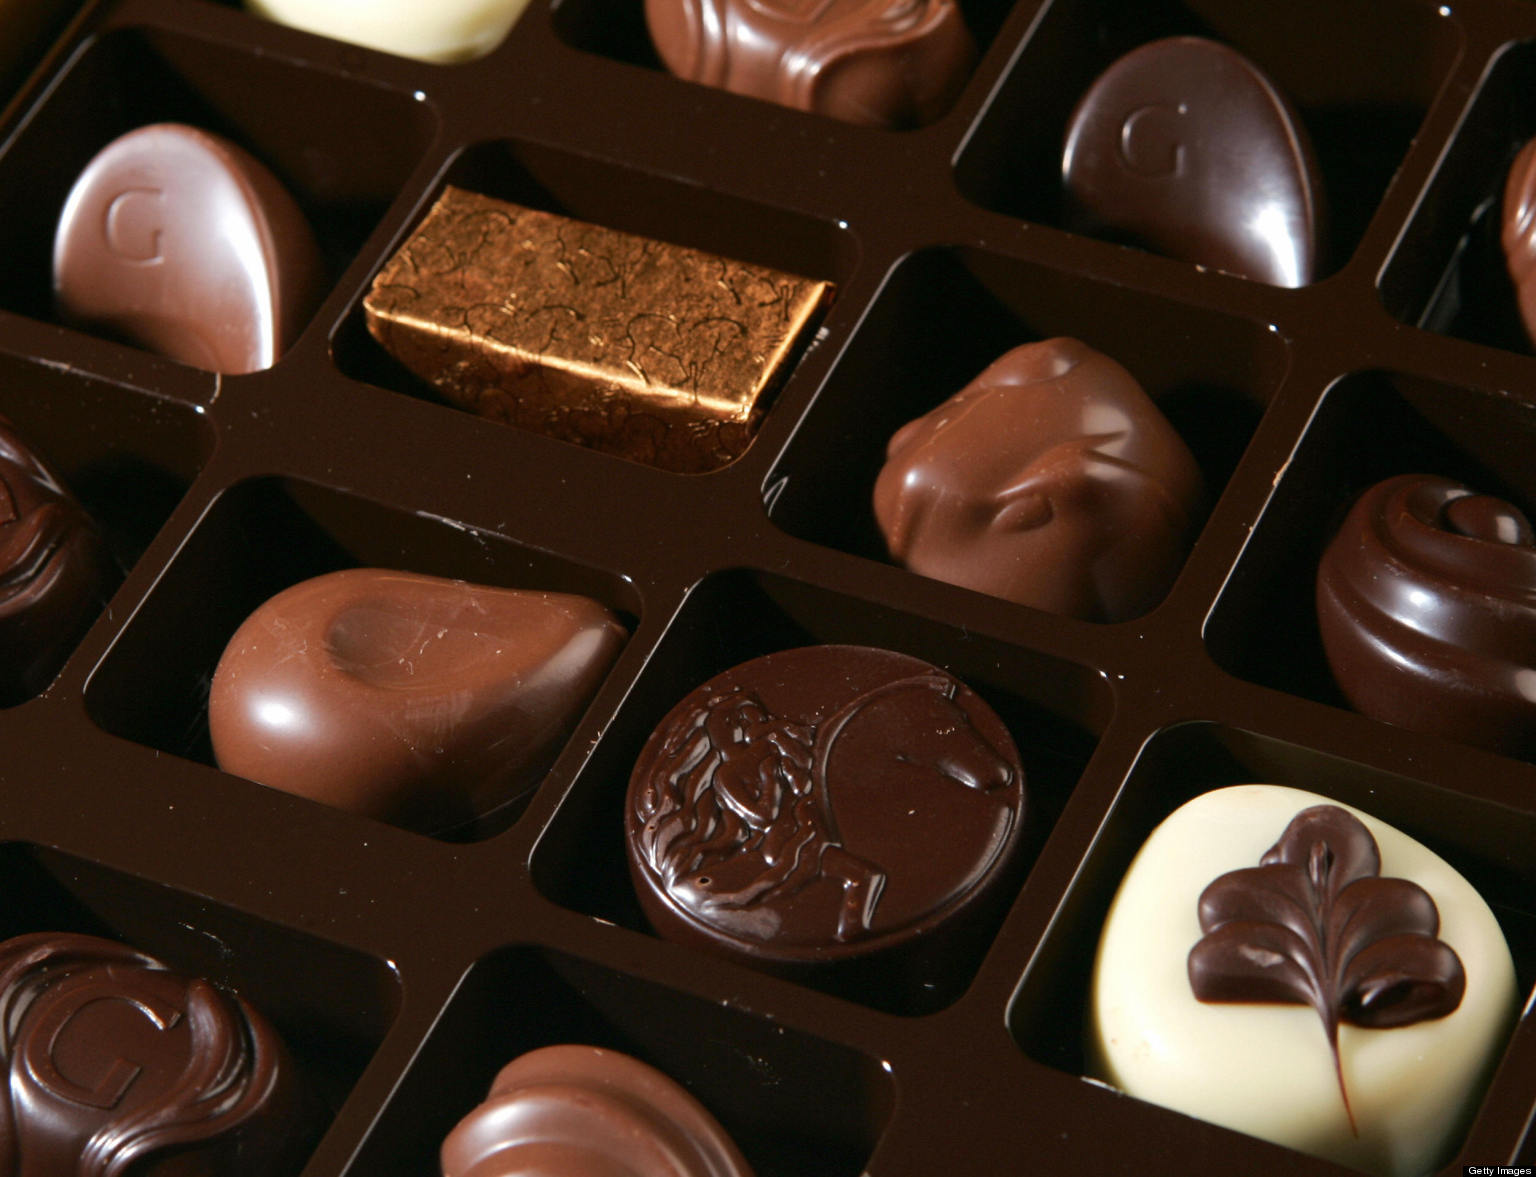 Belgian chocolate makers seek copyright protection from rivals